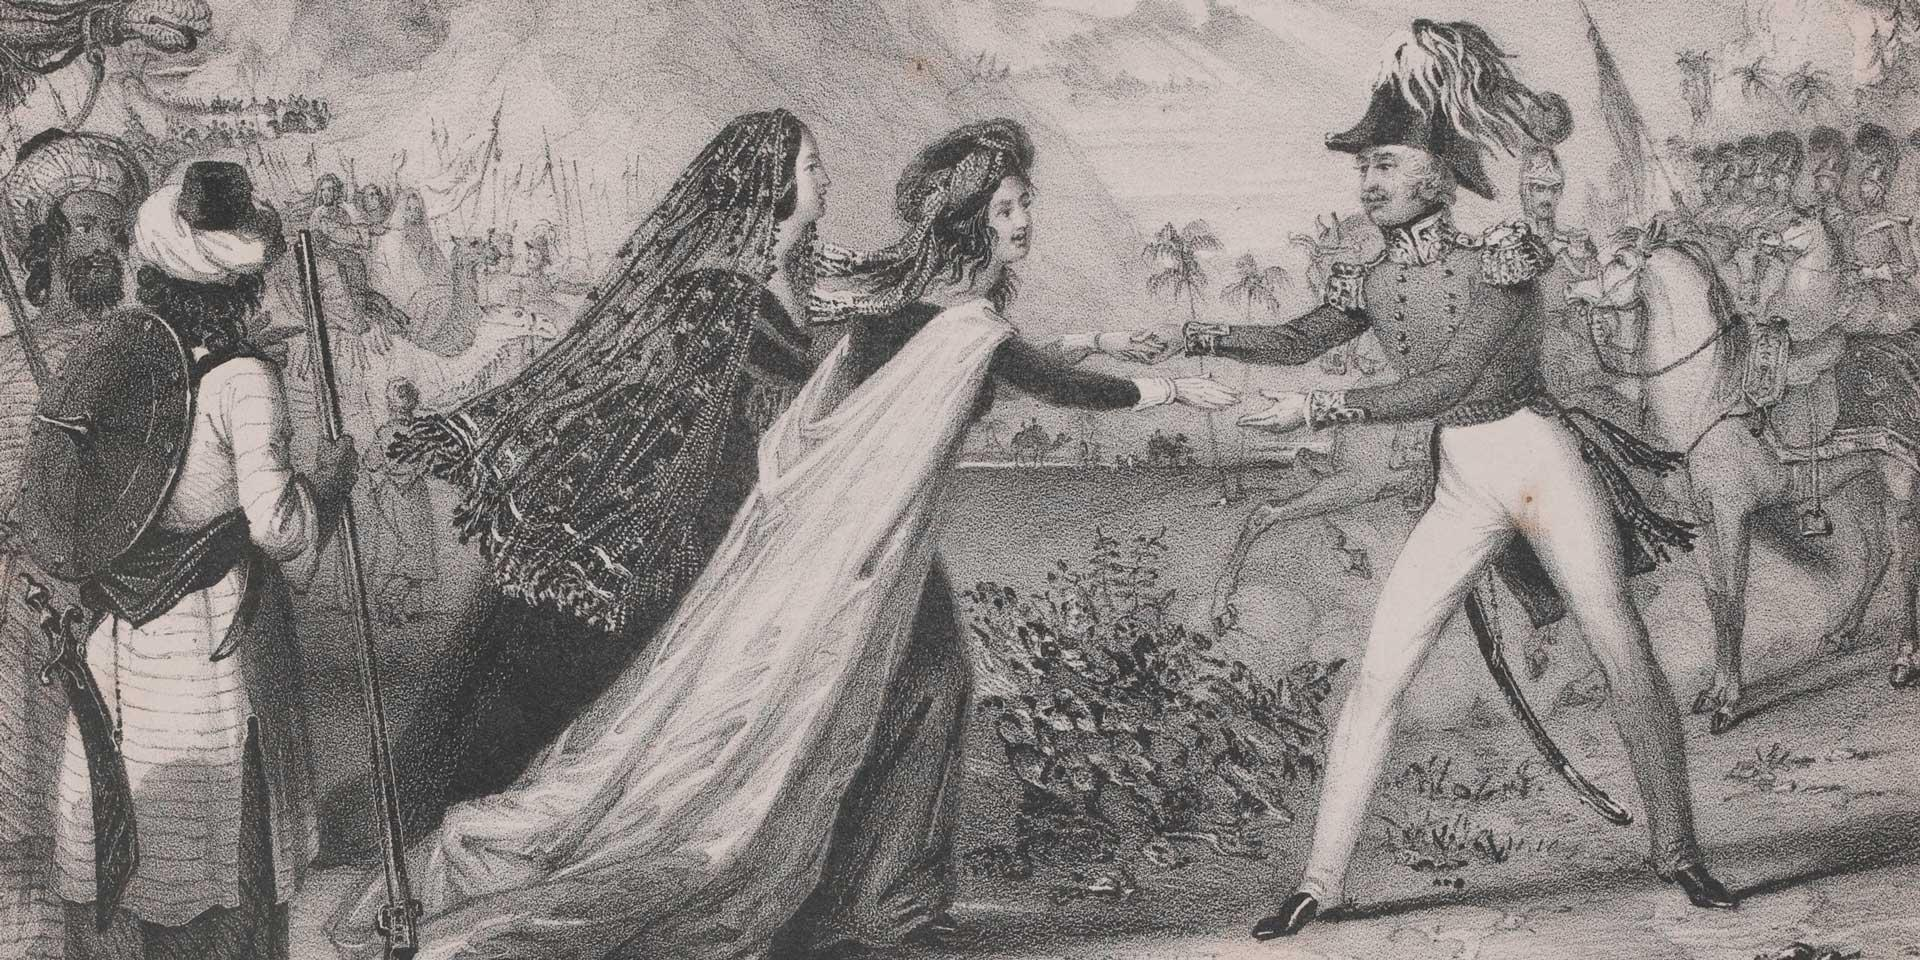 Major-General Sir Robert Sale rescuing his wife and daughter in Kabul, 1842